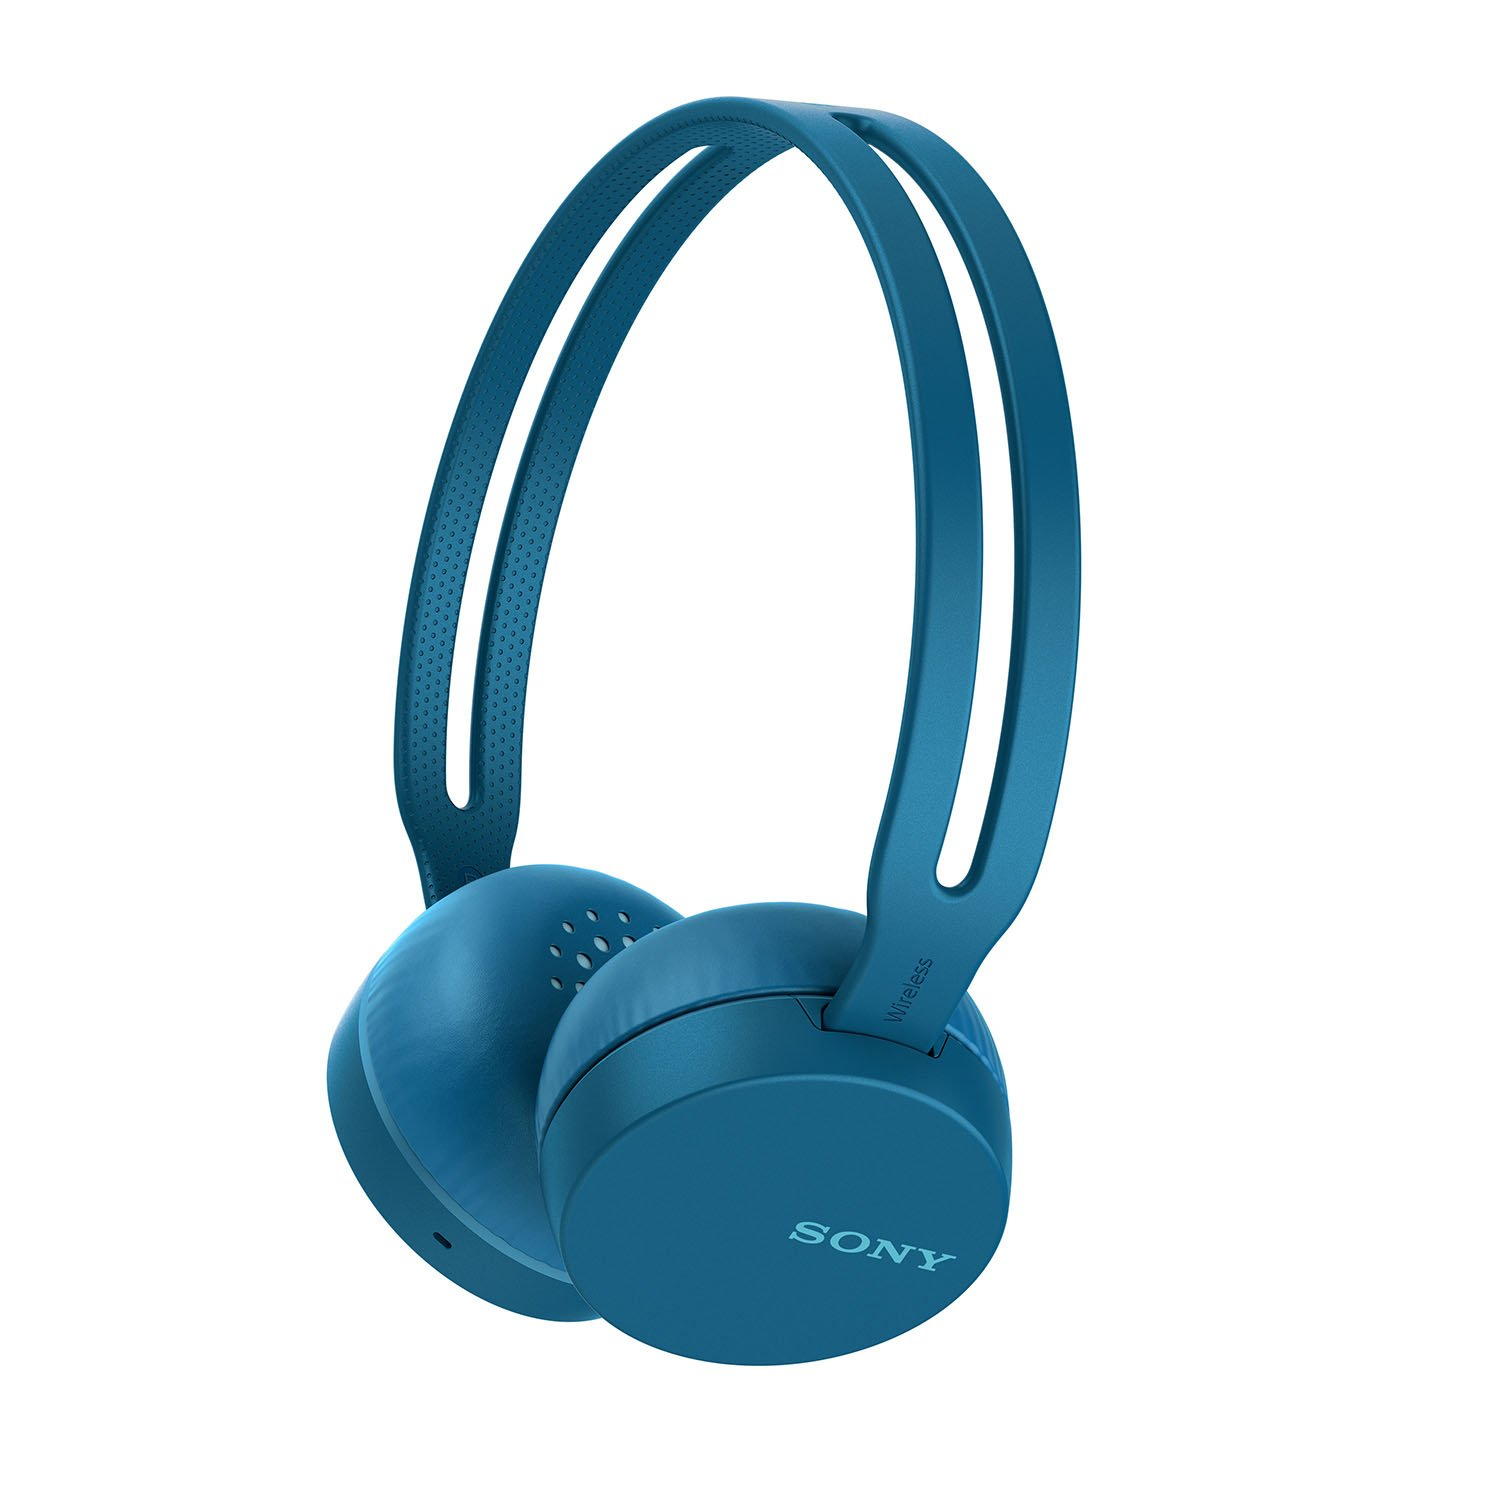 Sony WH-CH400 Wireless